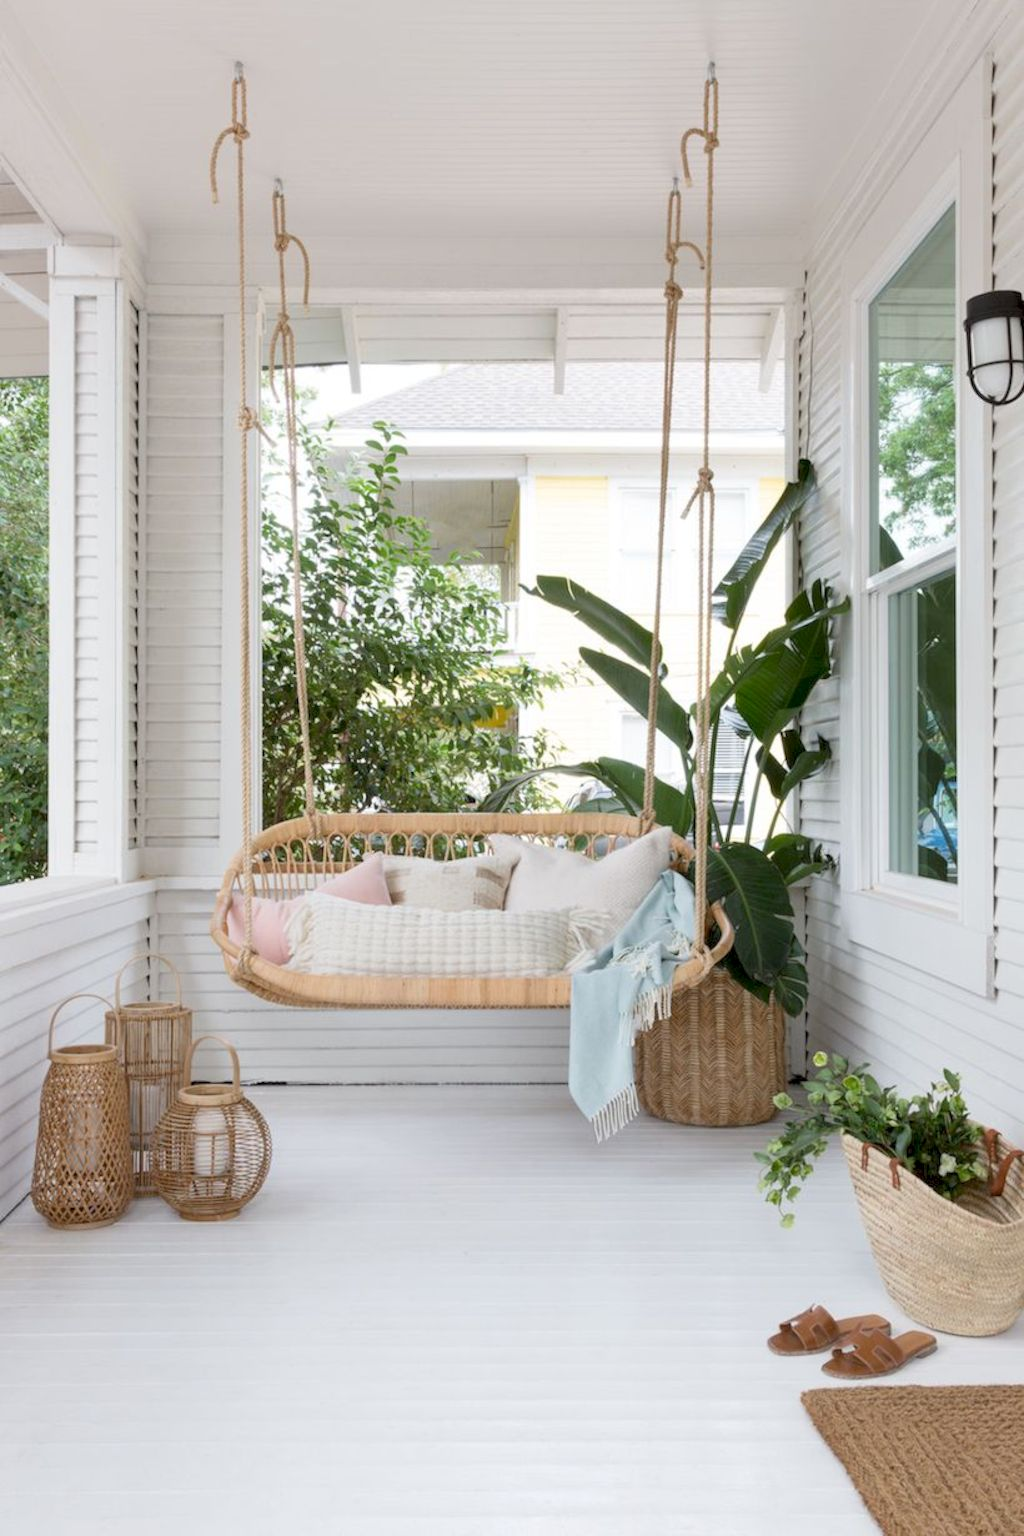 Coastal chic decoration with nautical accessories showing a fresh look in cool beach house styles Image 23